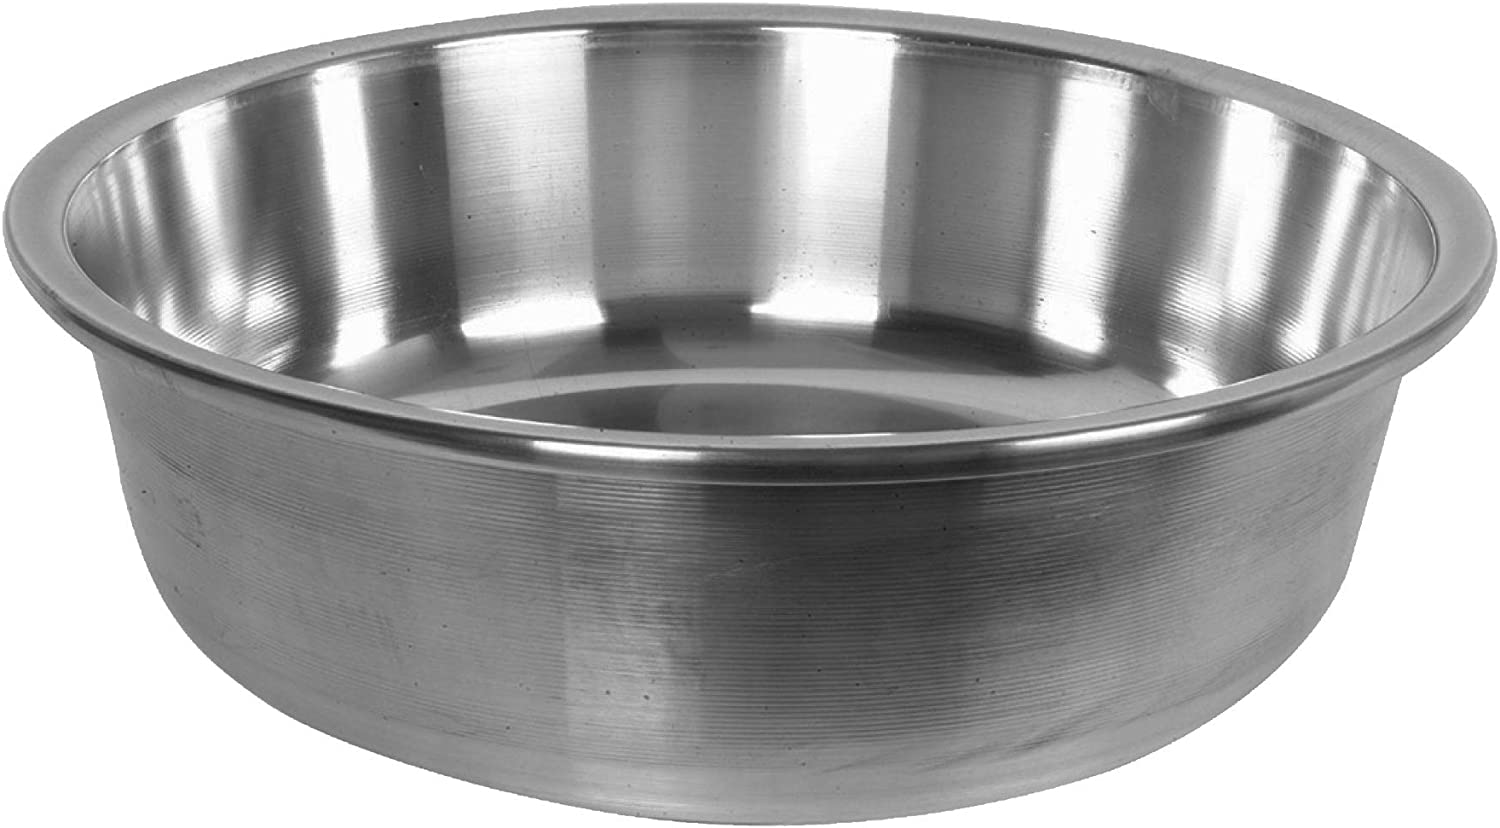 Online limited product Thunder Group Aluminum Basin 30-Inch 2-Inch Diameter by 7-1 Be super welcome Hei